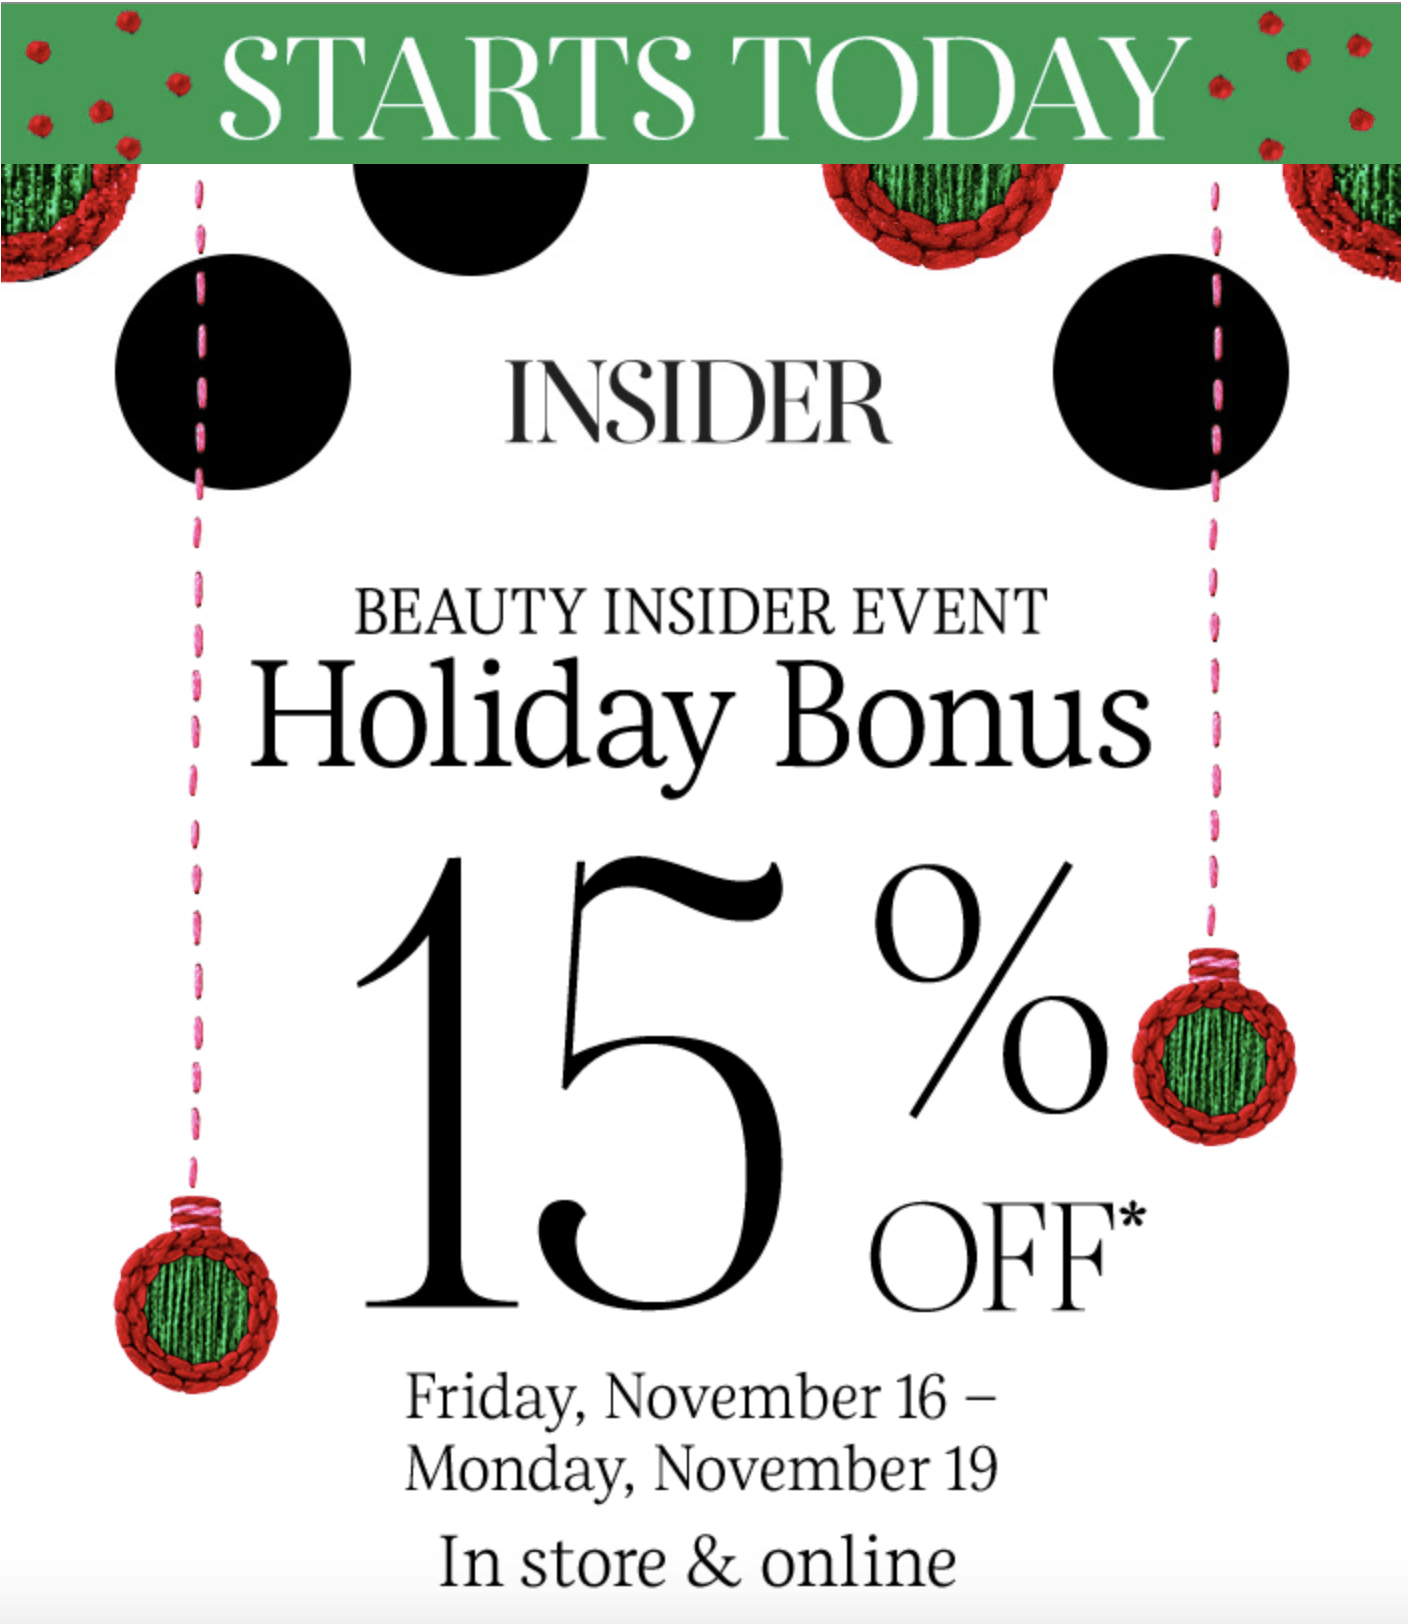 LAST DAY Sephora Holiday Beauty Insider Sale: Rouge & VIB 20% Off + Insiders Save 15% Off EVERYTHING!